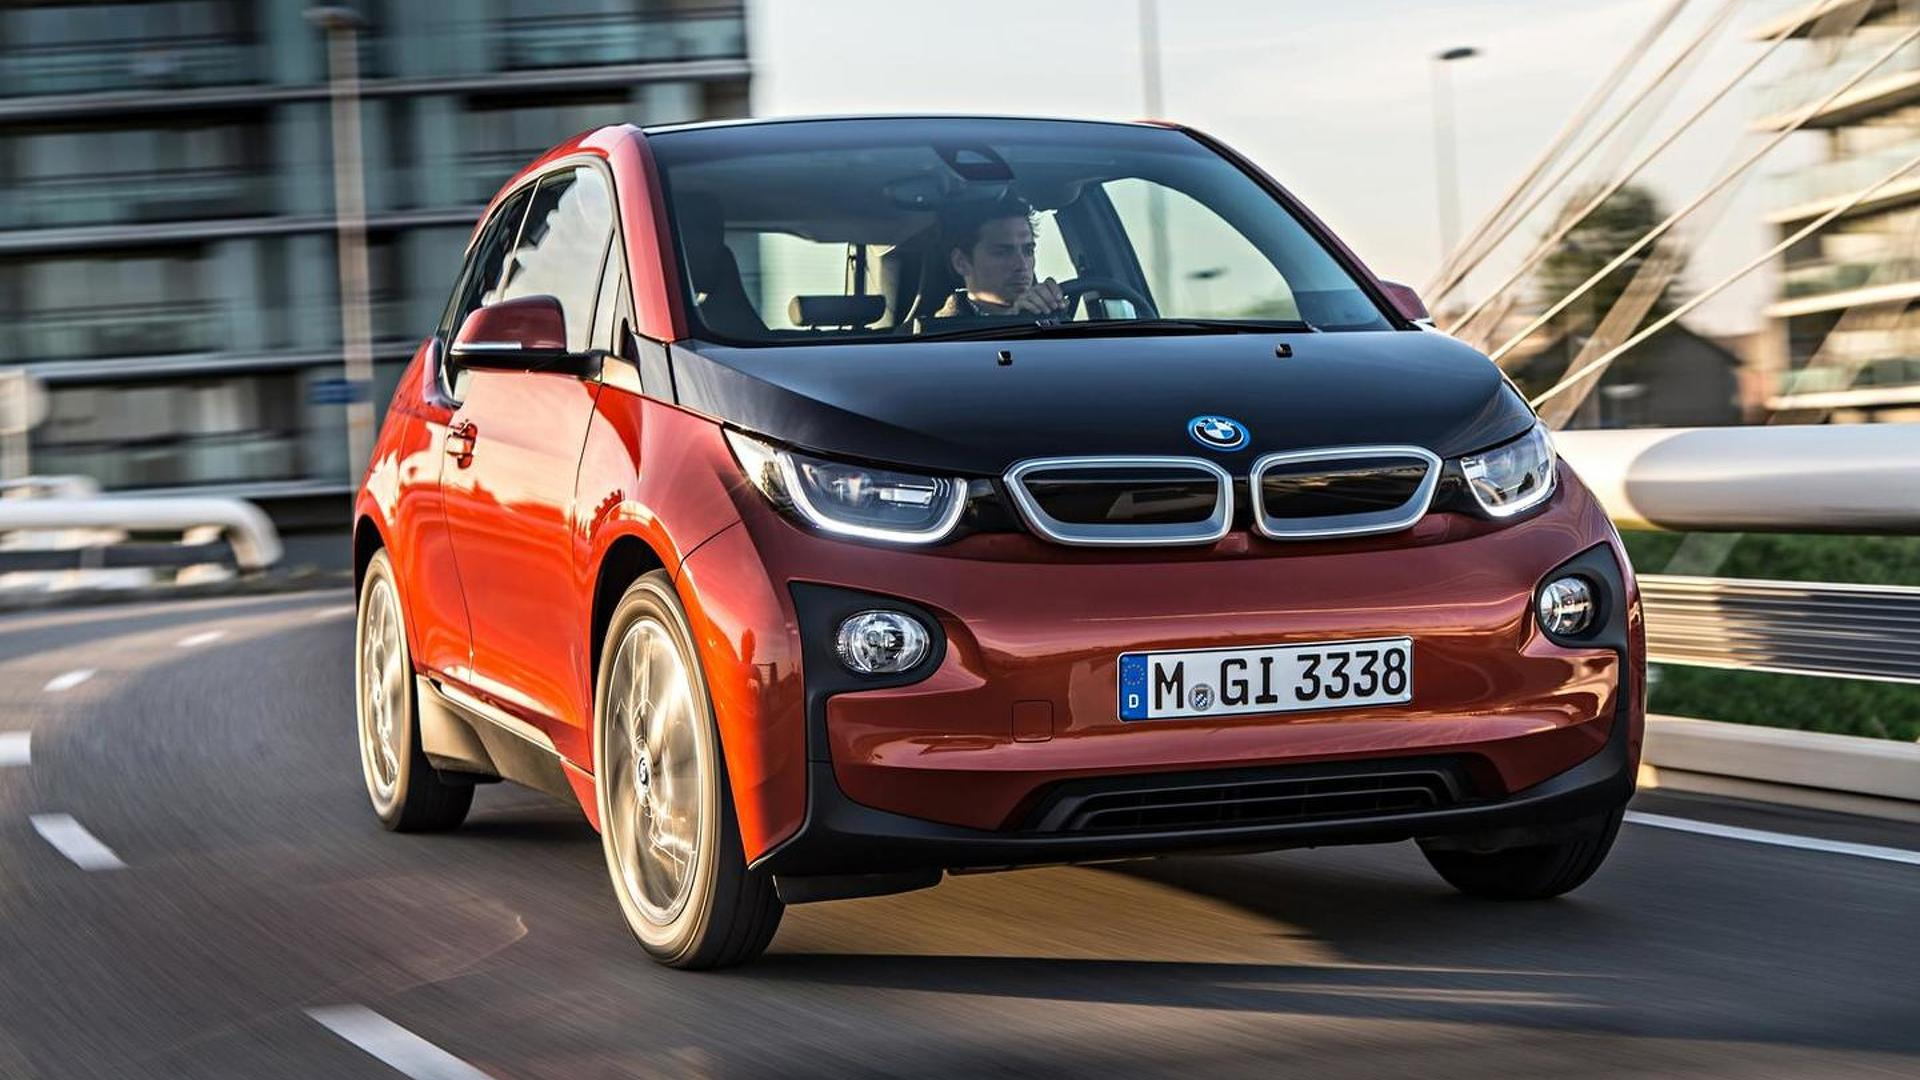 BMW i3 to gain a fuel cell variant - report